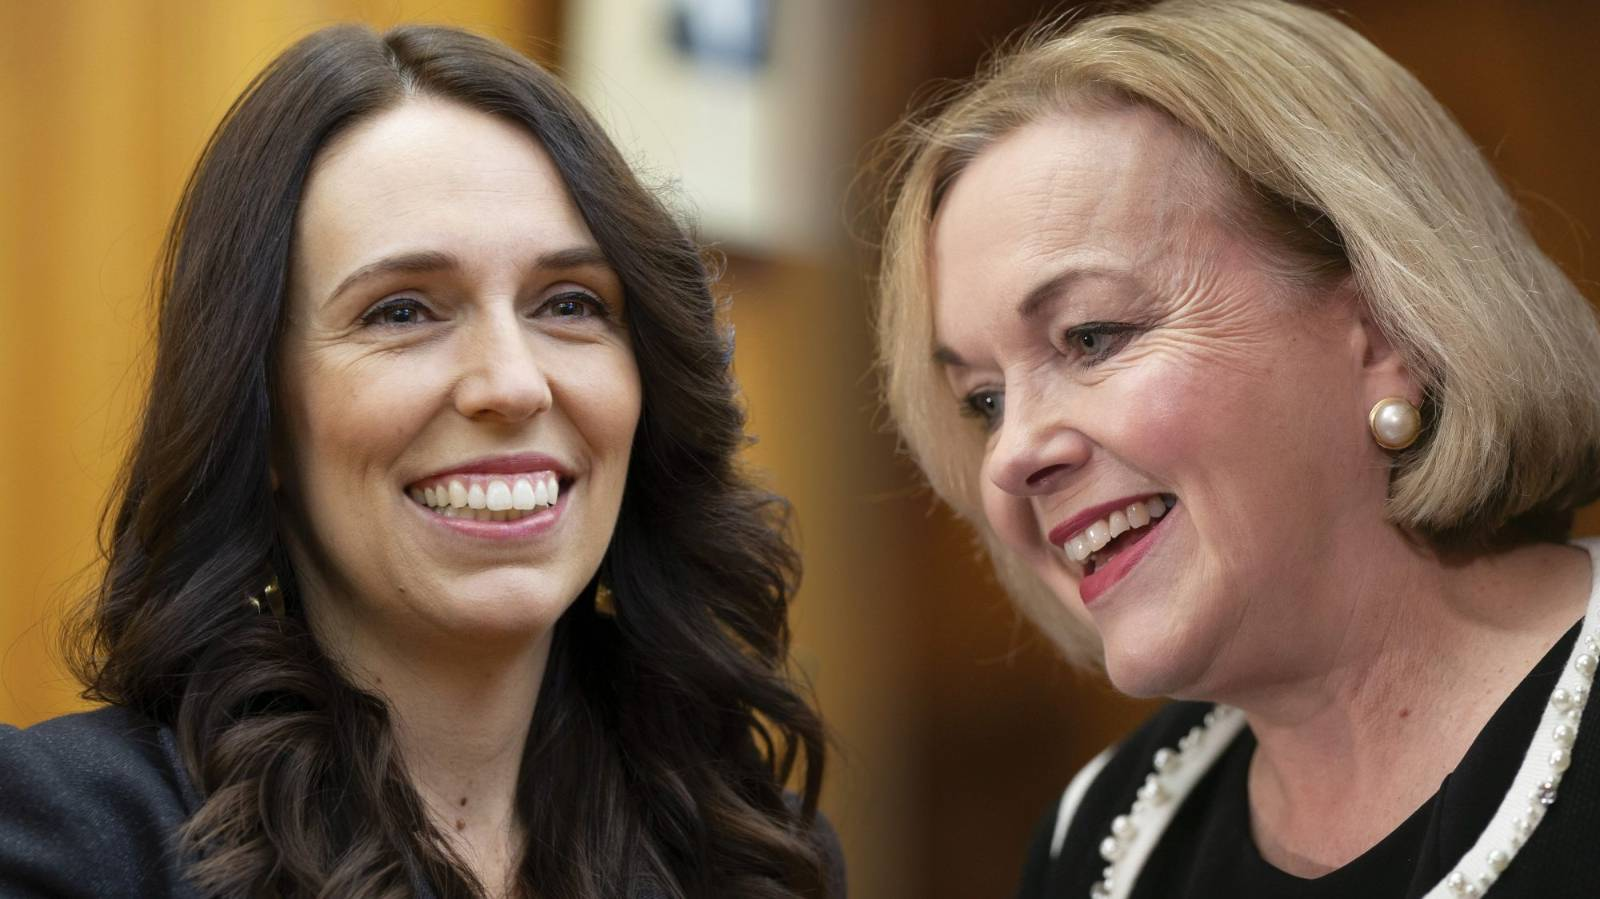 From Waikato to the world: Ardern and Collins' rise